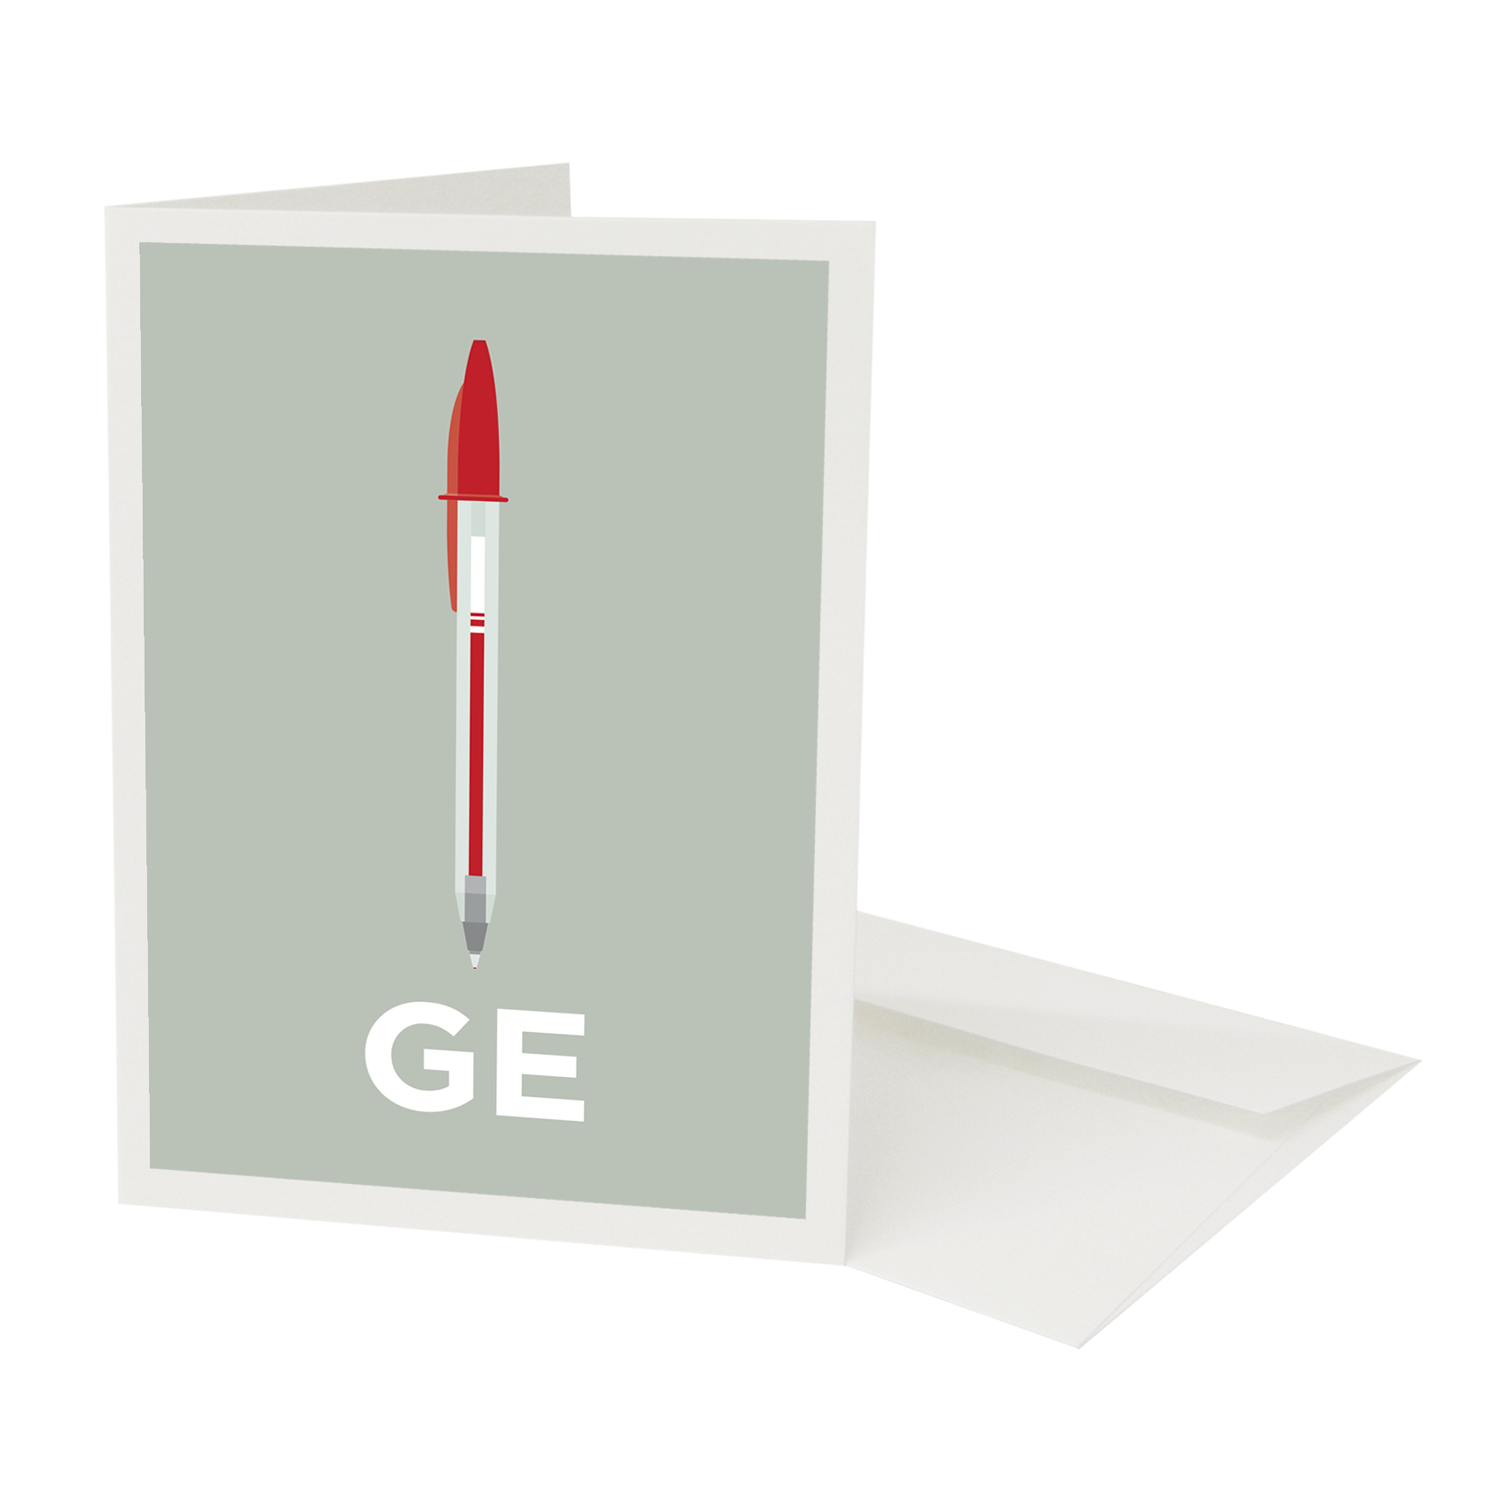 Place in Print Penge Neighbourhood Pun Greetings Card